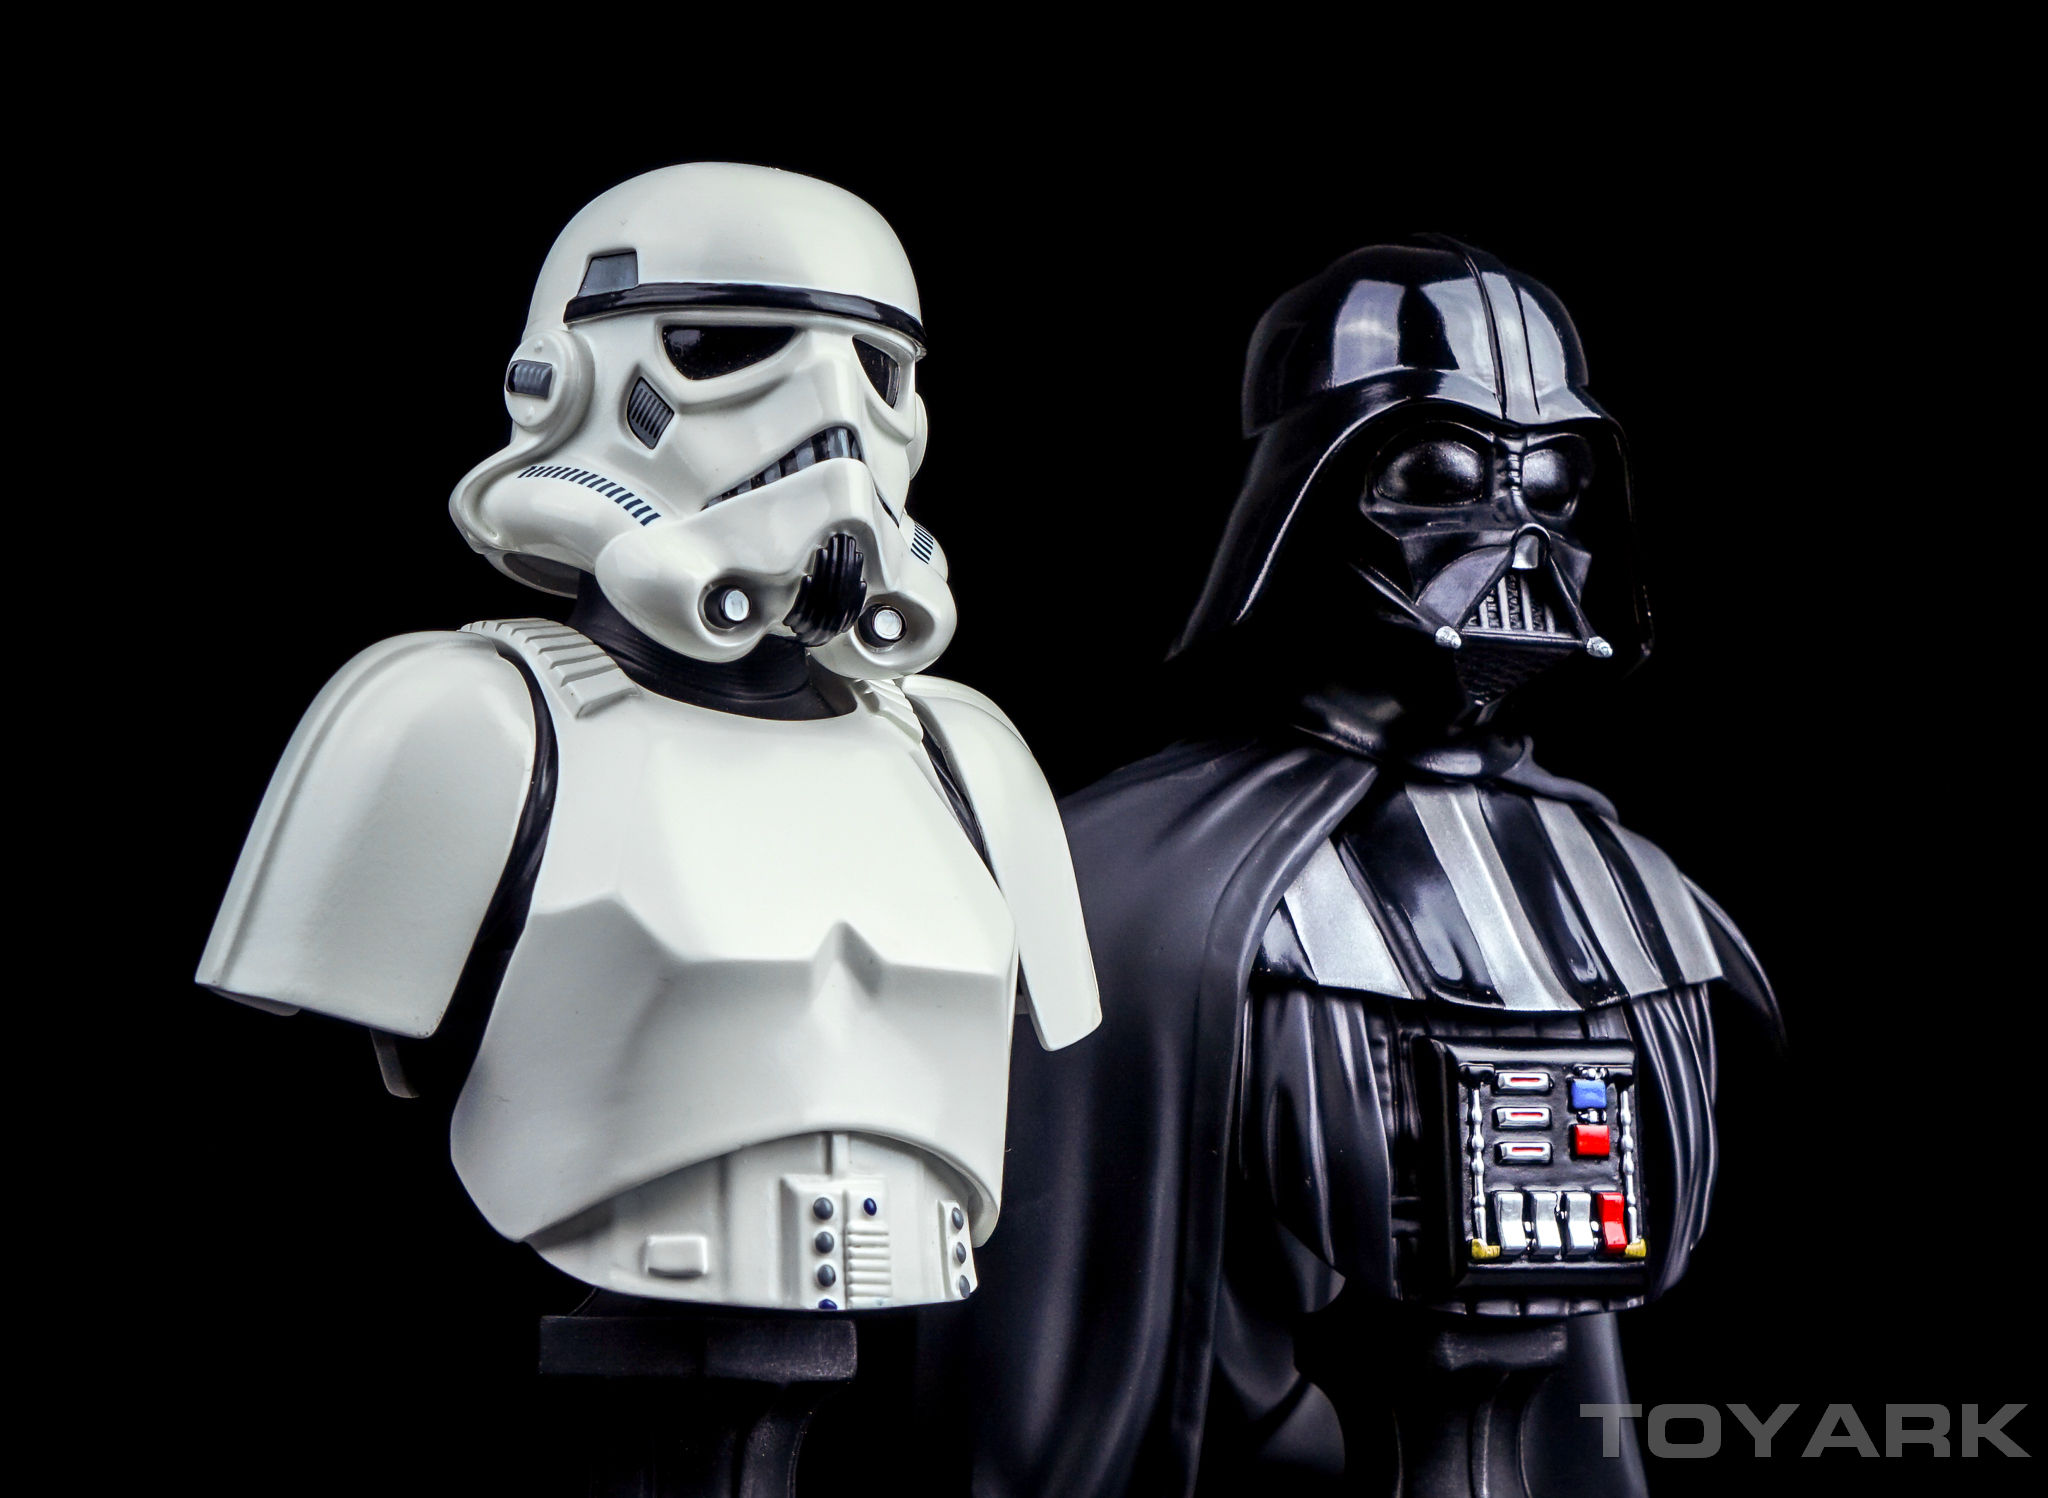 http://news.toyark.com/wp-content/uploads/sites/4/2016/04/Star-Wars-Stormtrooper-GS-Bust-032.jpg